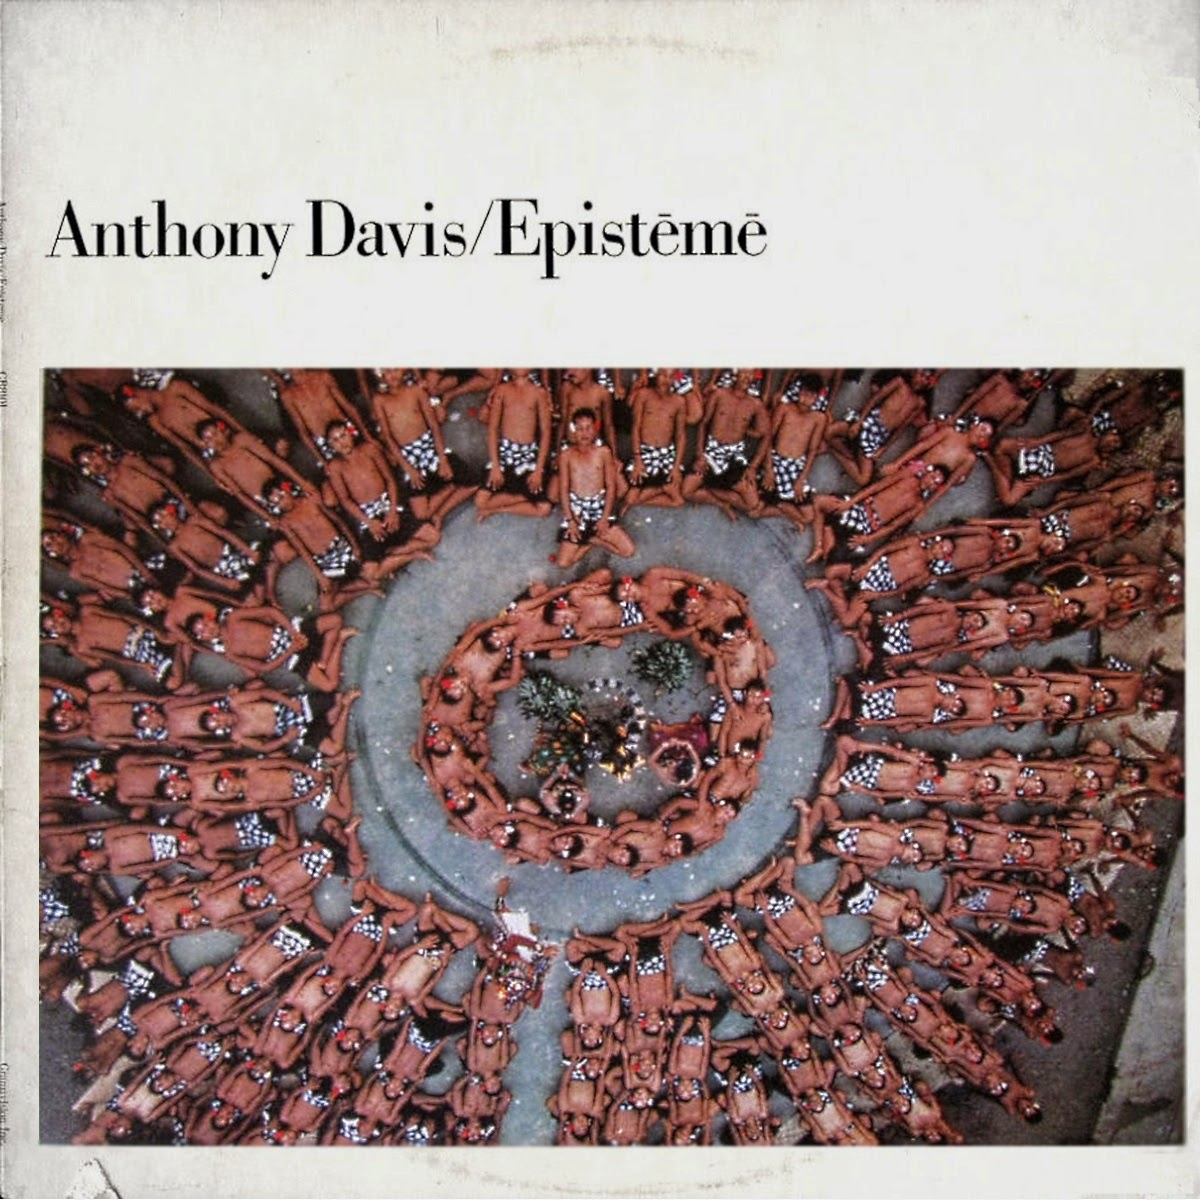 ANTHONY DAVIS, EPISTEME